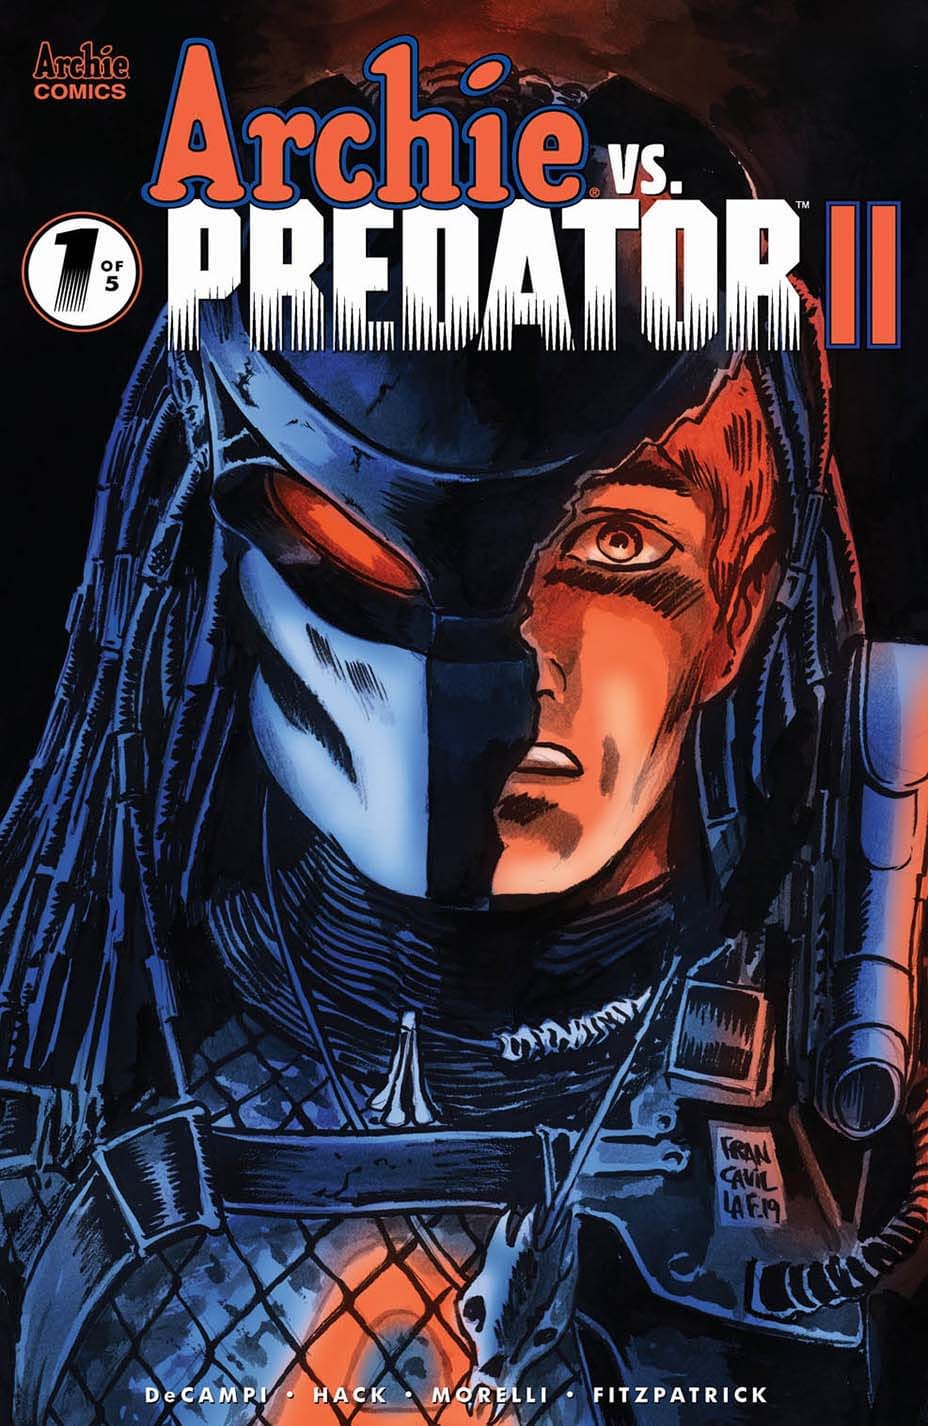 Alex de Campi and Robert Hack Make Meta-Commentary on Reboots for Archie vs. Predator Sequel